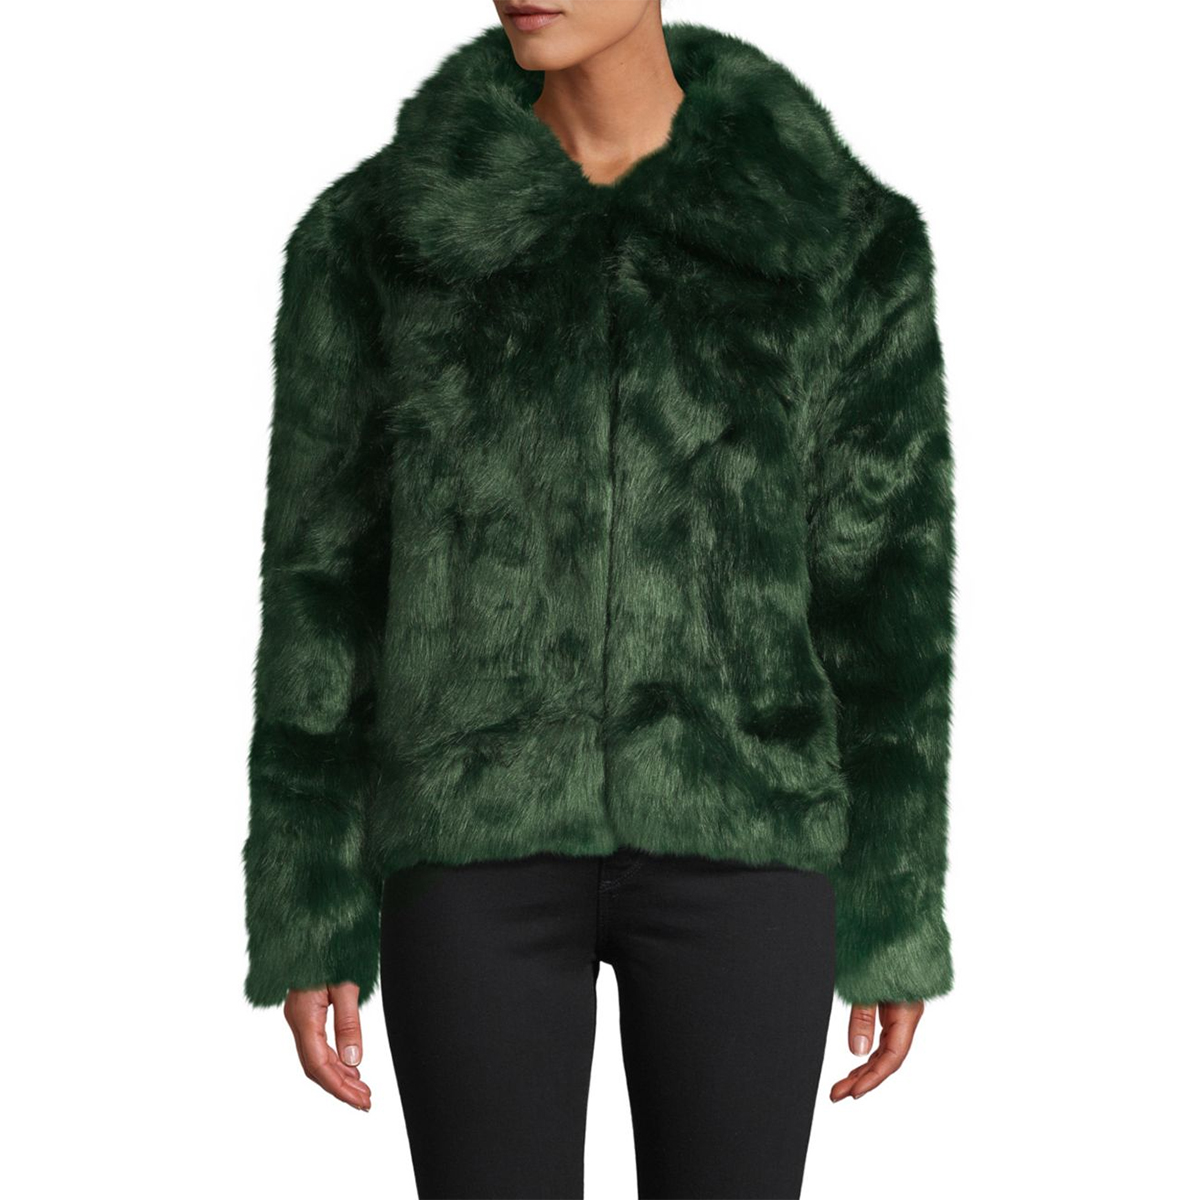 C&C California Emerald Faux Fur Jacket